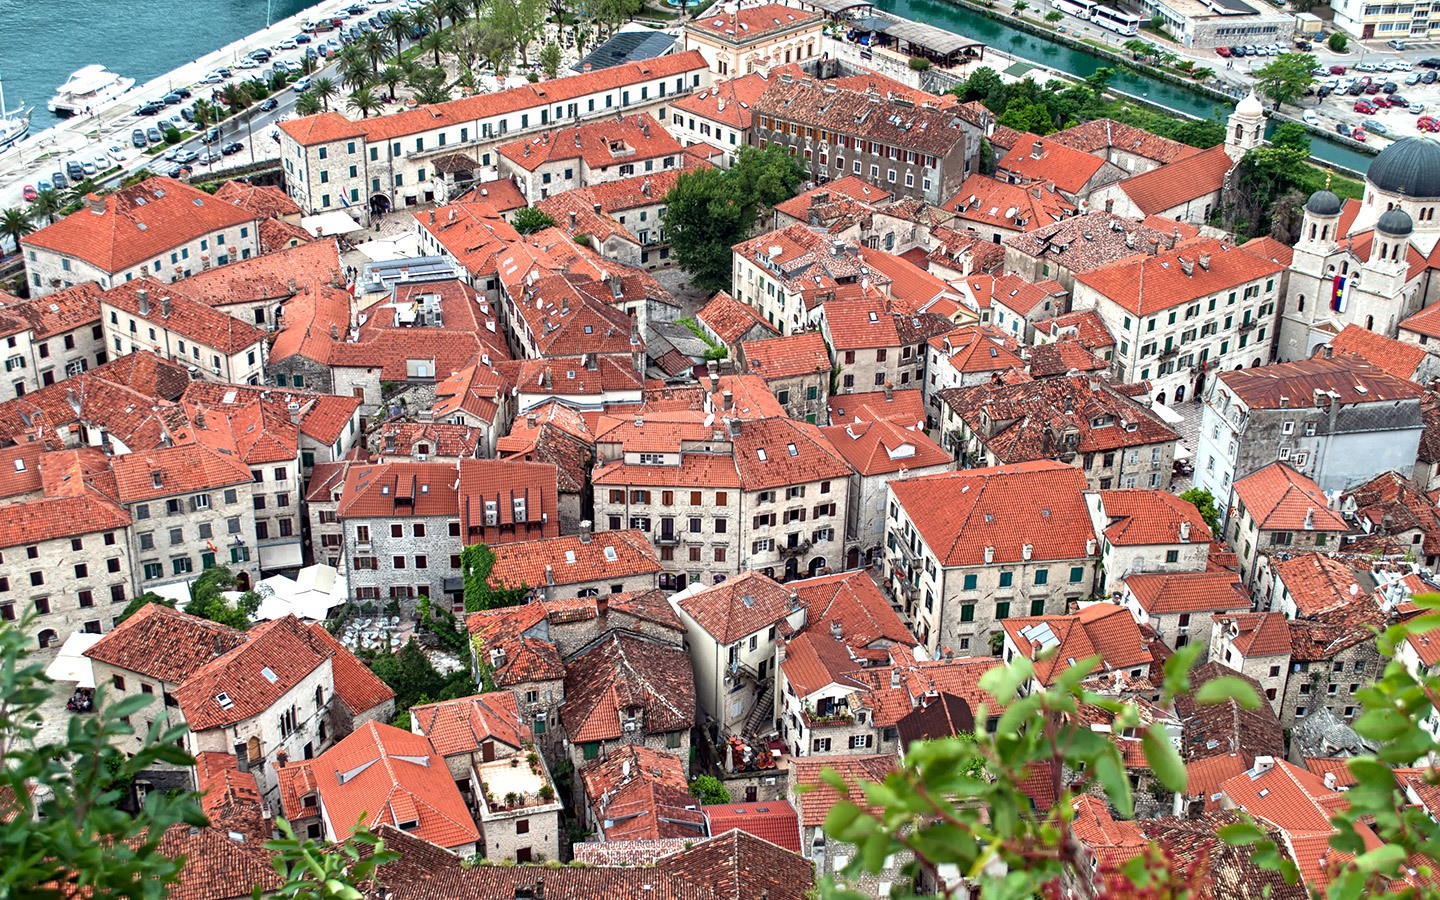 Views down onto Kotor from the city walls